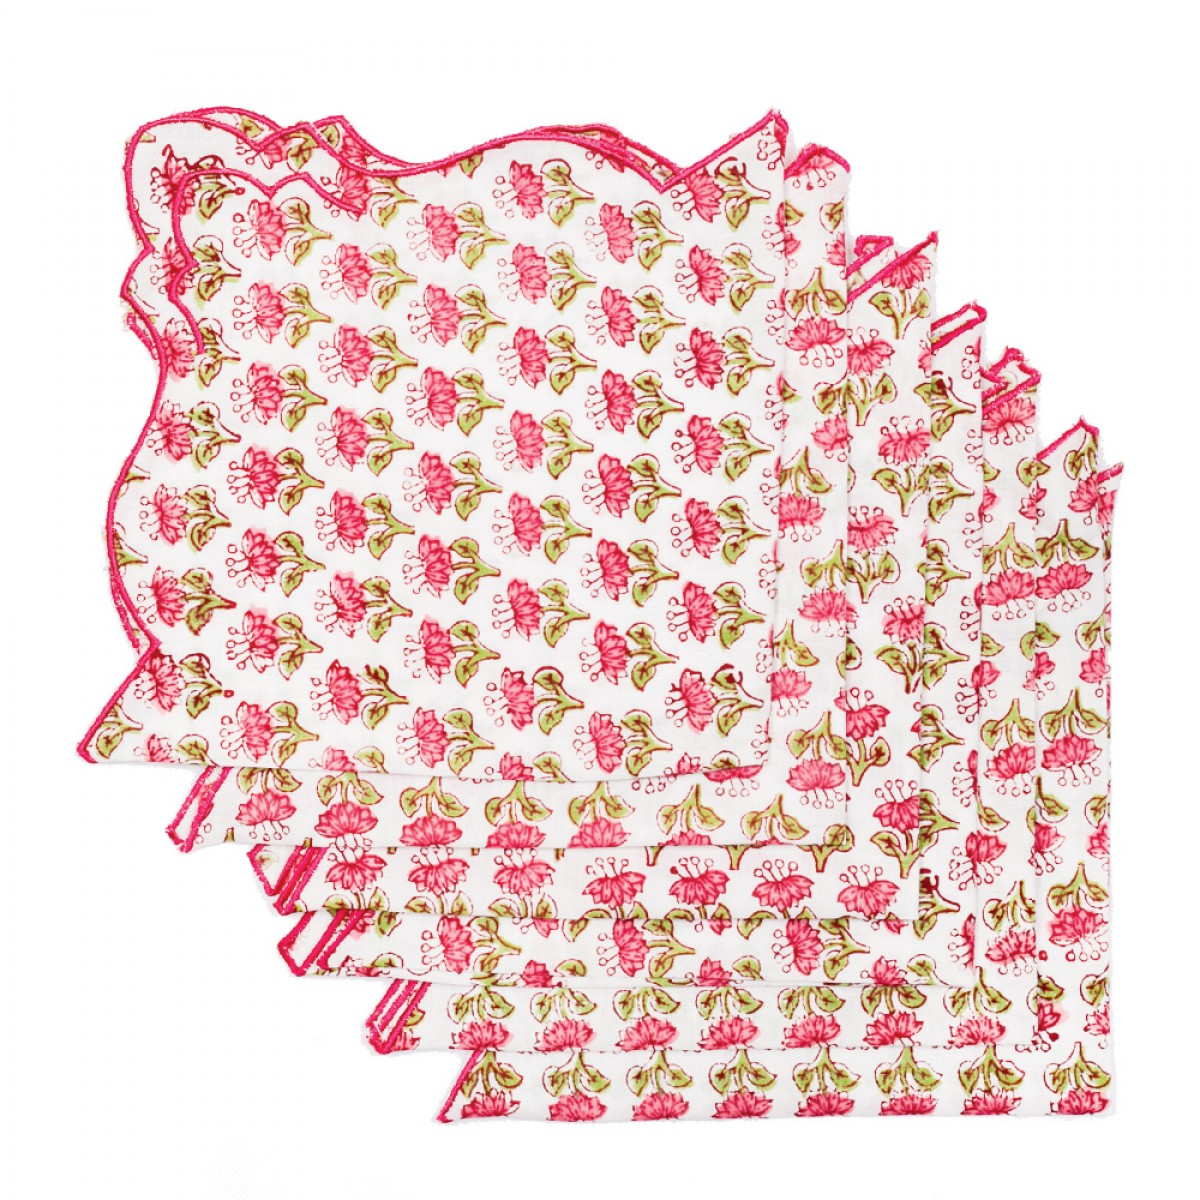 Cotton Scallop Embroidered Printed Napkin - Cherry (Set of 6)